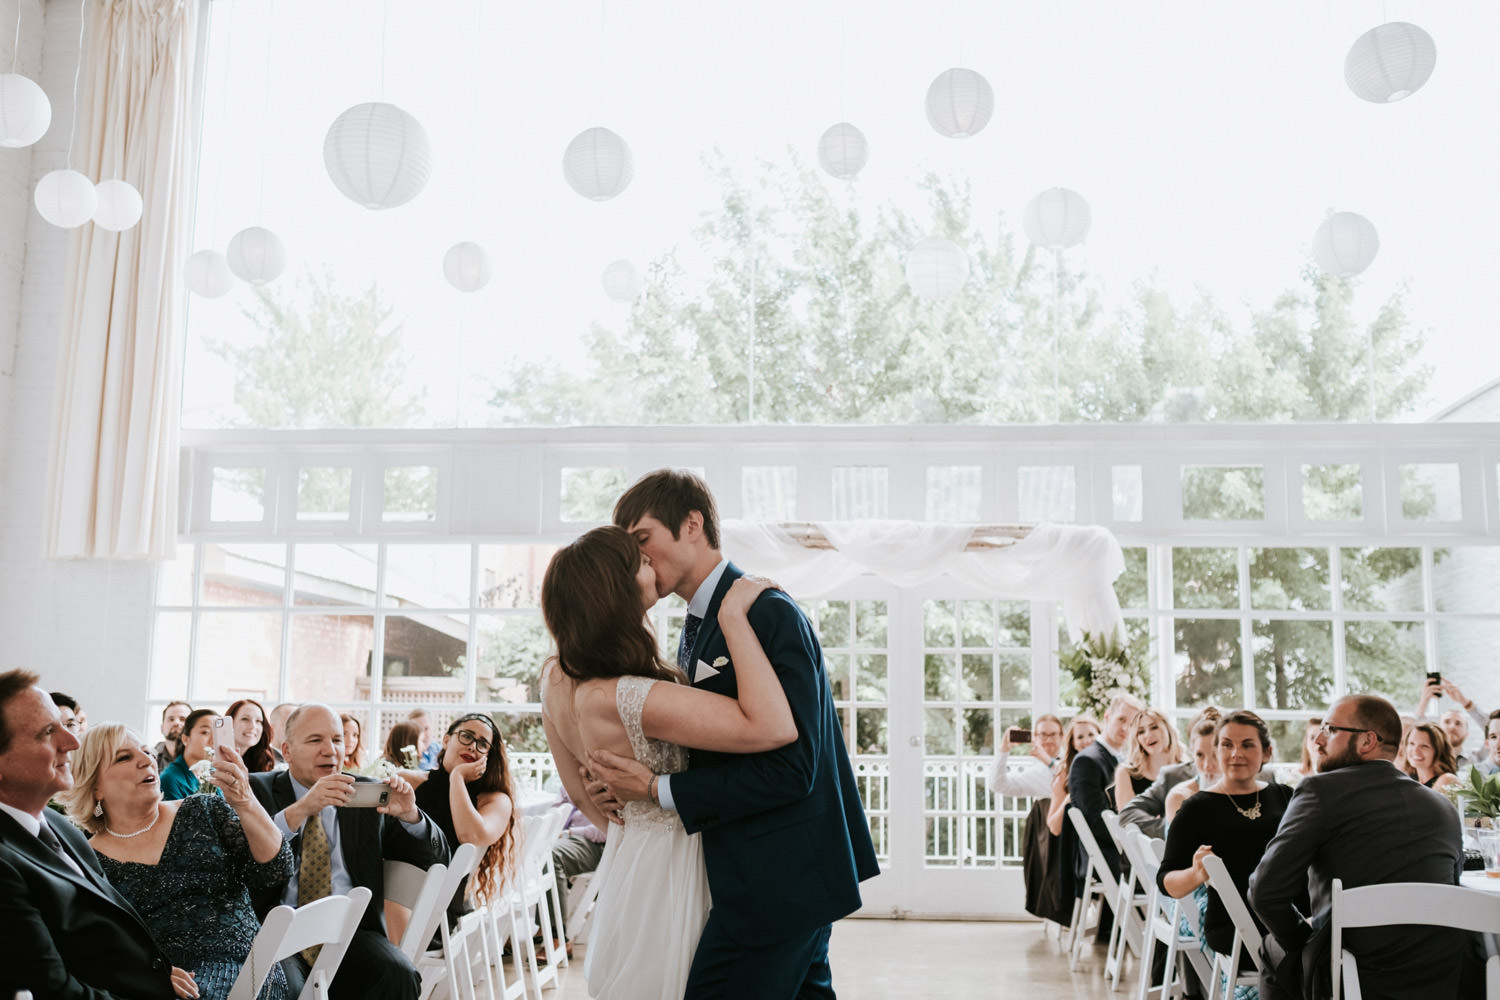 Groom kisses the bride after first dance